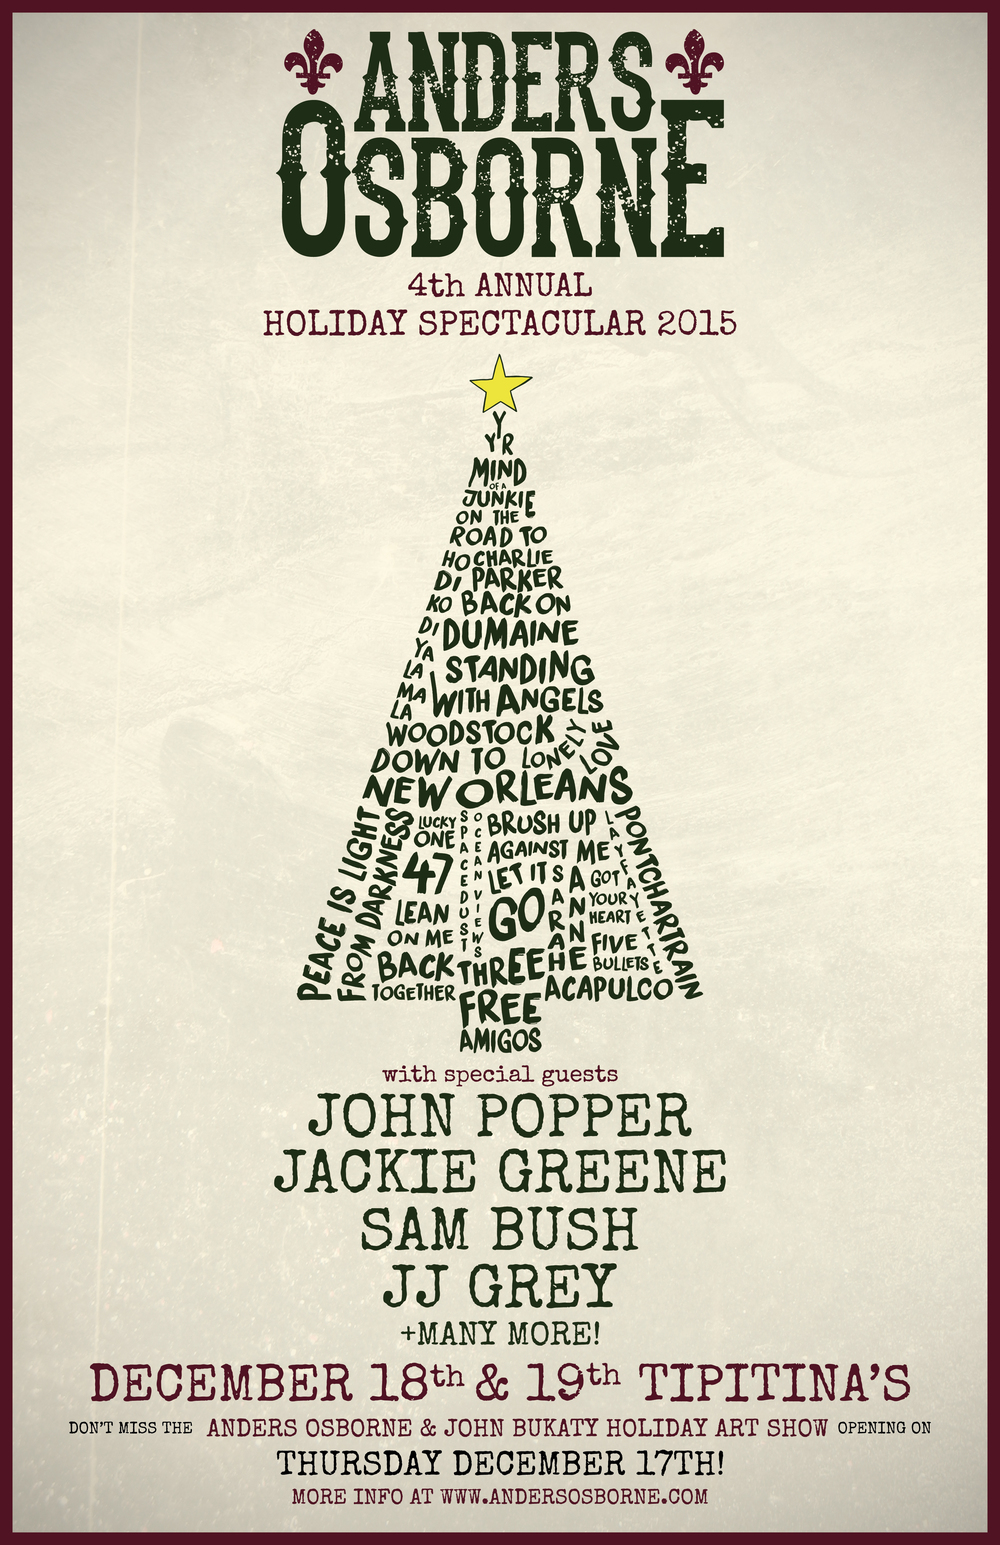 "TWO NIGHT PASSES -  TICKETS HERE   FRIDAY DECEMBER 18TH -  TICKETS HERE   SATURDAY DECEMBER 19TH -  TICKETS HERE   Use the code ""ANDERS""  The 4th annual Anders Osborne Holiday Spectacular will be taking place this December at Tipitina's in New Orleans! John Popper, Jackie Greene, Sam Bush and JJ Grey are all confirmed as special guests with many more still to be announced. Presale tickets are on sale this Thursday October 22nd through the Tipitina's website- tickets are on sale to the general public this Friday October 23rd.   In addition to the Holiday Spectacular, this year will also feature the first Anders Osborne & John Bukaty Holiday Art Show. This special event will take place the night before the shows at Tip's- Thursday December 17th from 7:00PM - 11:00PM at the John Bukaty Studio & Gallery at 841 Carondelet St in New Orleans. The art show will be a celebration of art & music featuring live painting demonstrations from Anders and John Bukaty, a special percussion performance from Johnny Vidacovich and much more. RSVP to the art show  HERE."